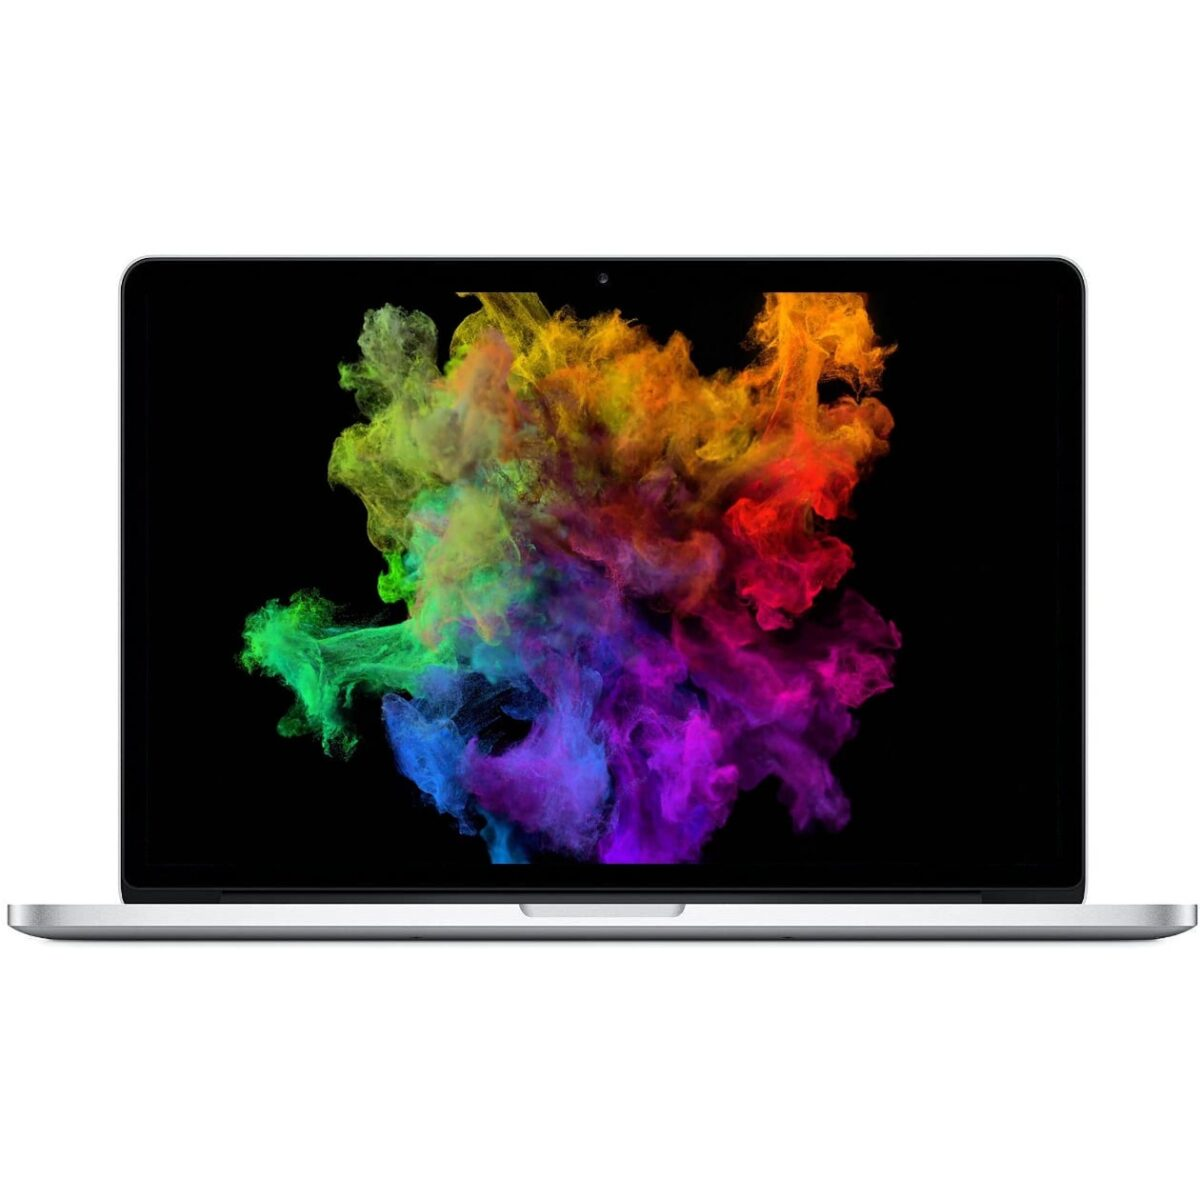 "Apple Macbook Pro 13.3"" Retina 256GB SSD 16GB RAM A1502 Powerful Core i5 Mac Laptop OS Catalina"